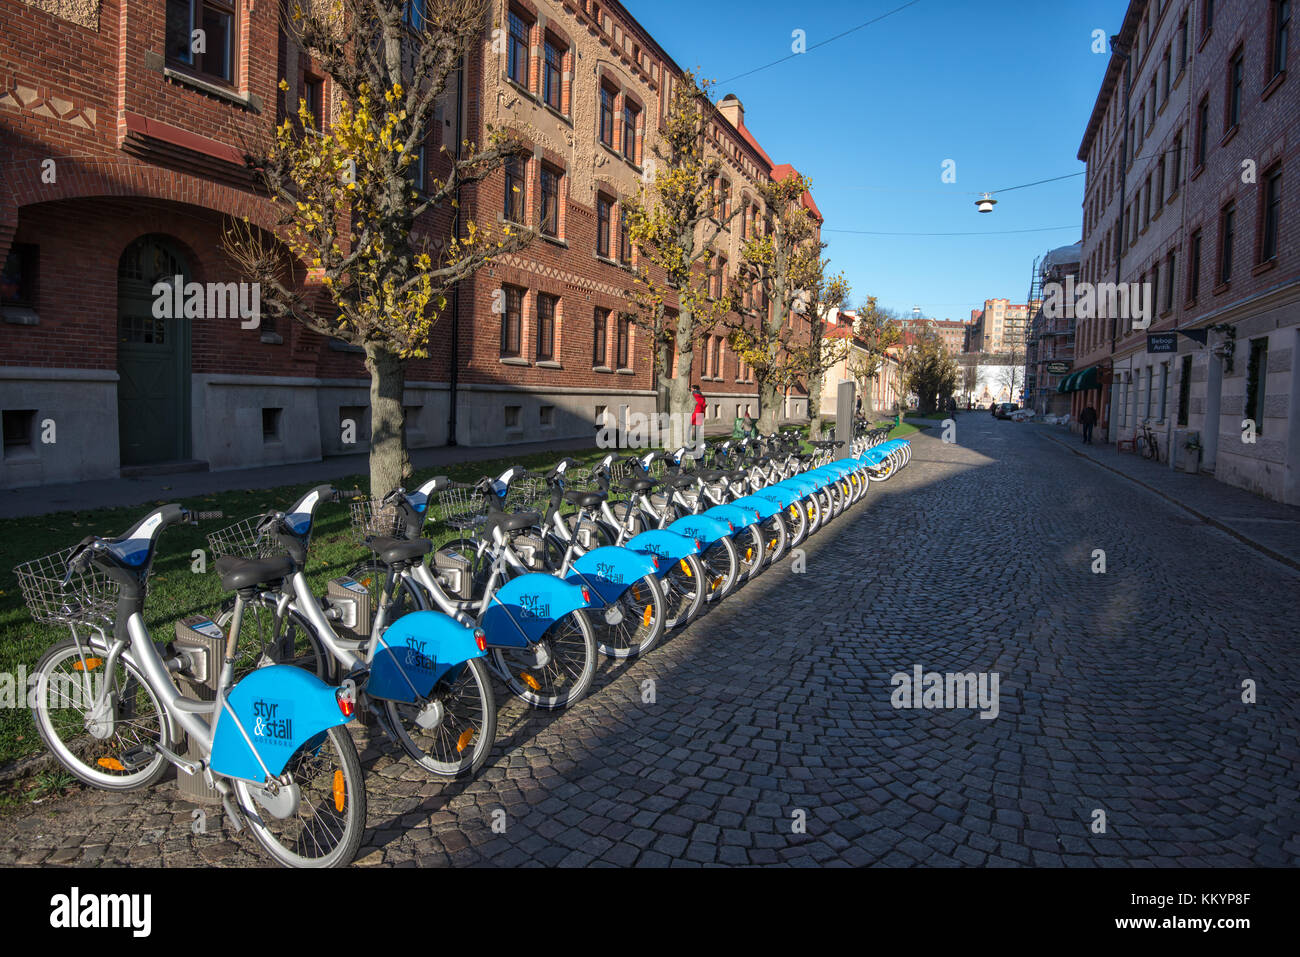 Göteborg City Bike station at Haga in Gothenburg. Haga is a historic residential area, which has become fashionable - Stock Image